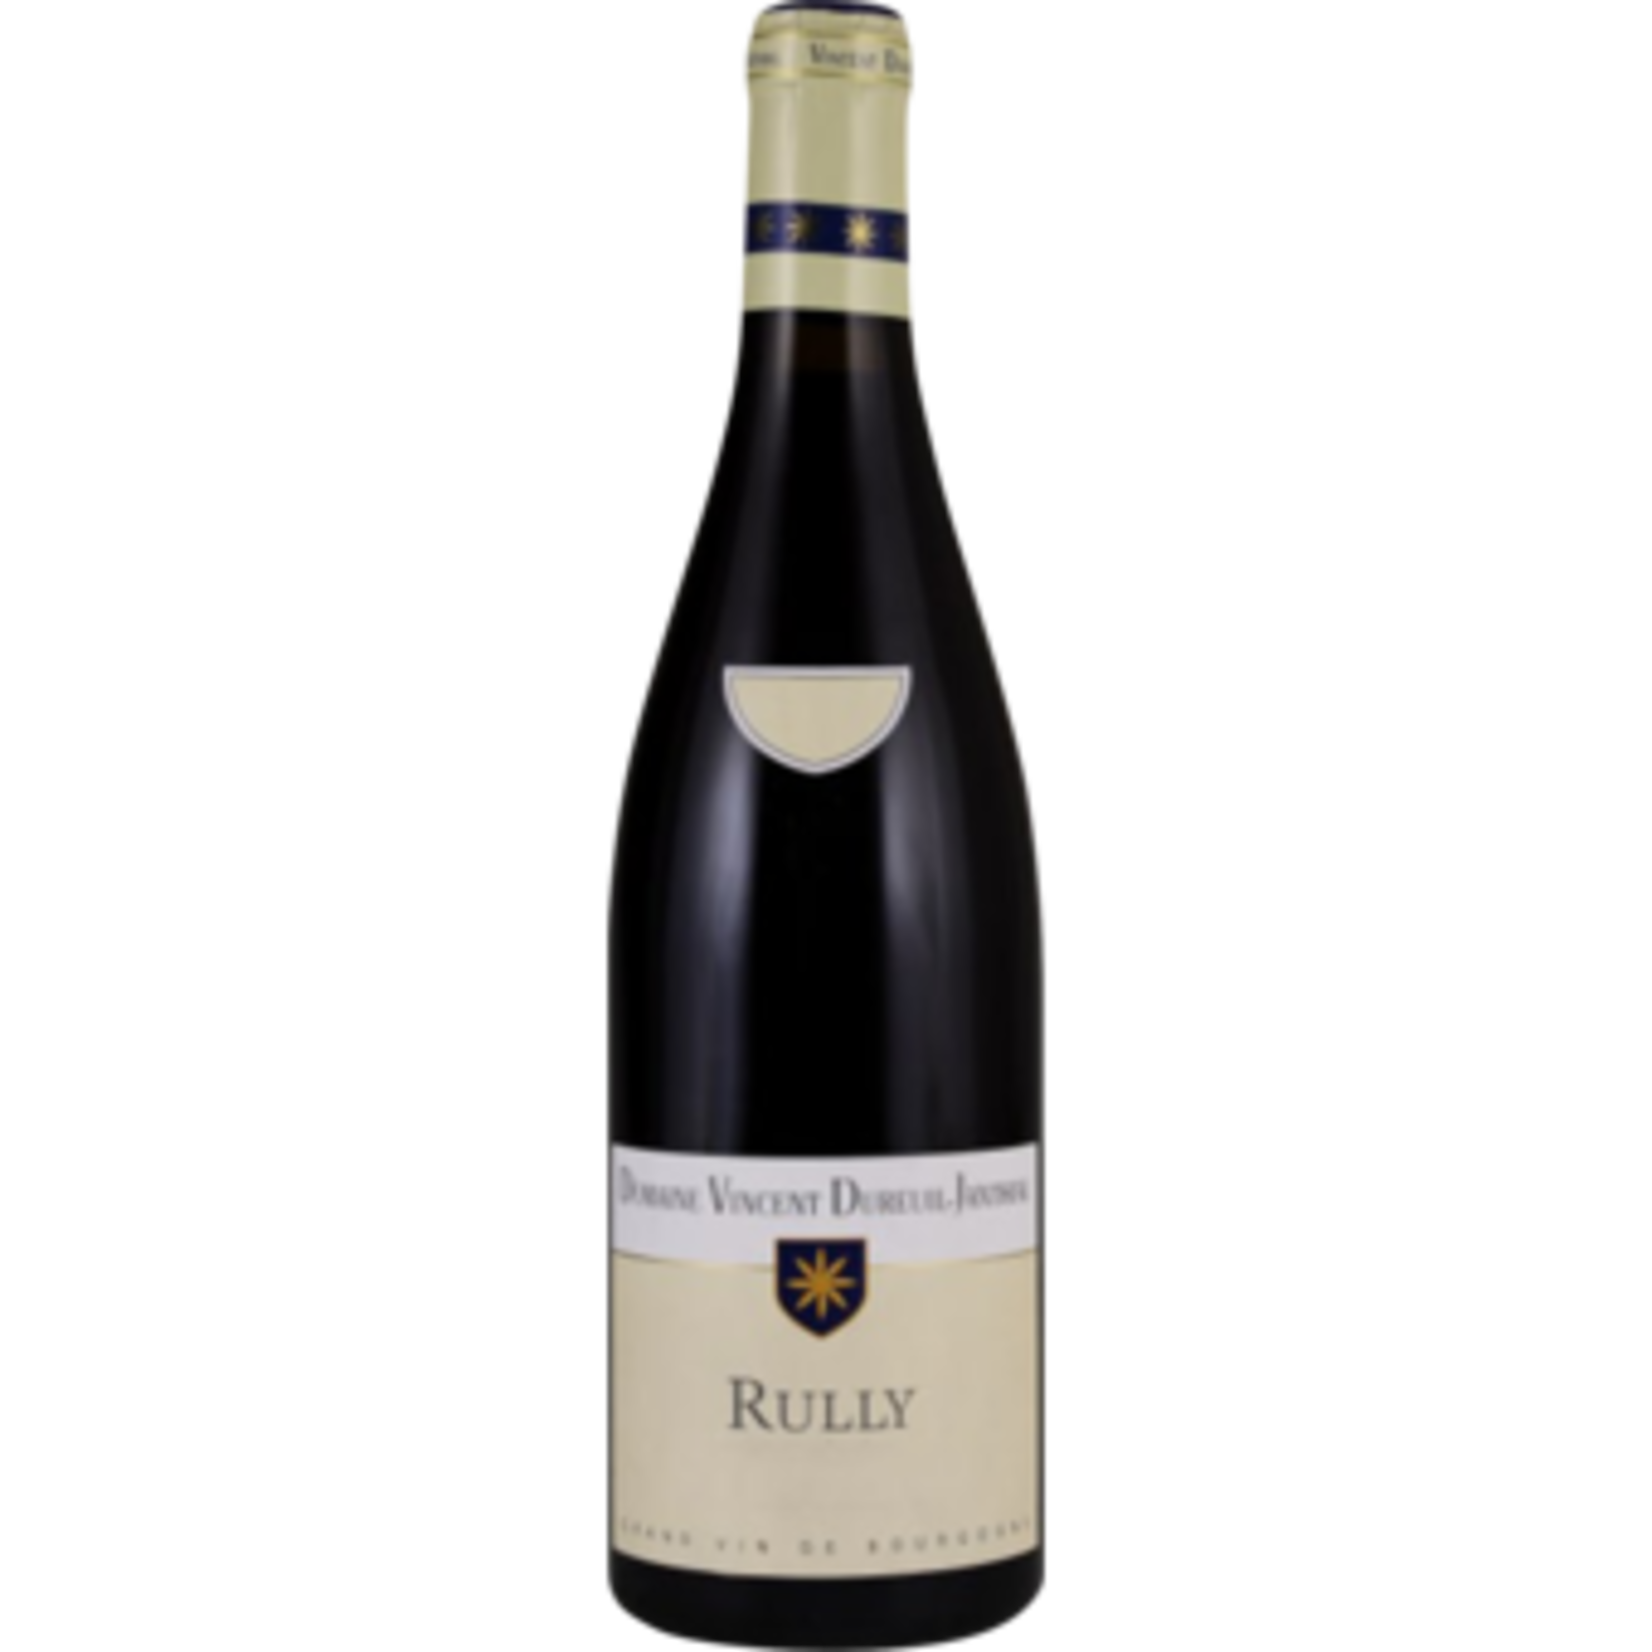 Rully Rouge, Domaine Vincent Dureuil-Janthial, 2017